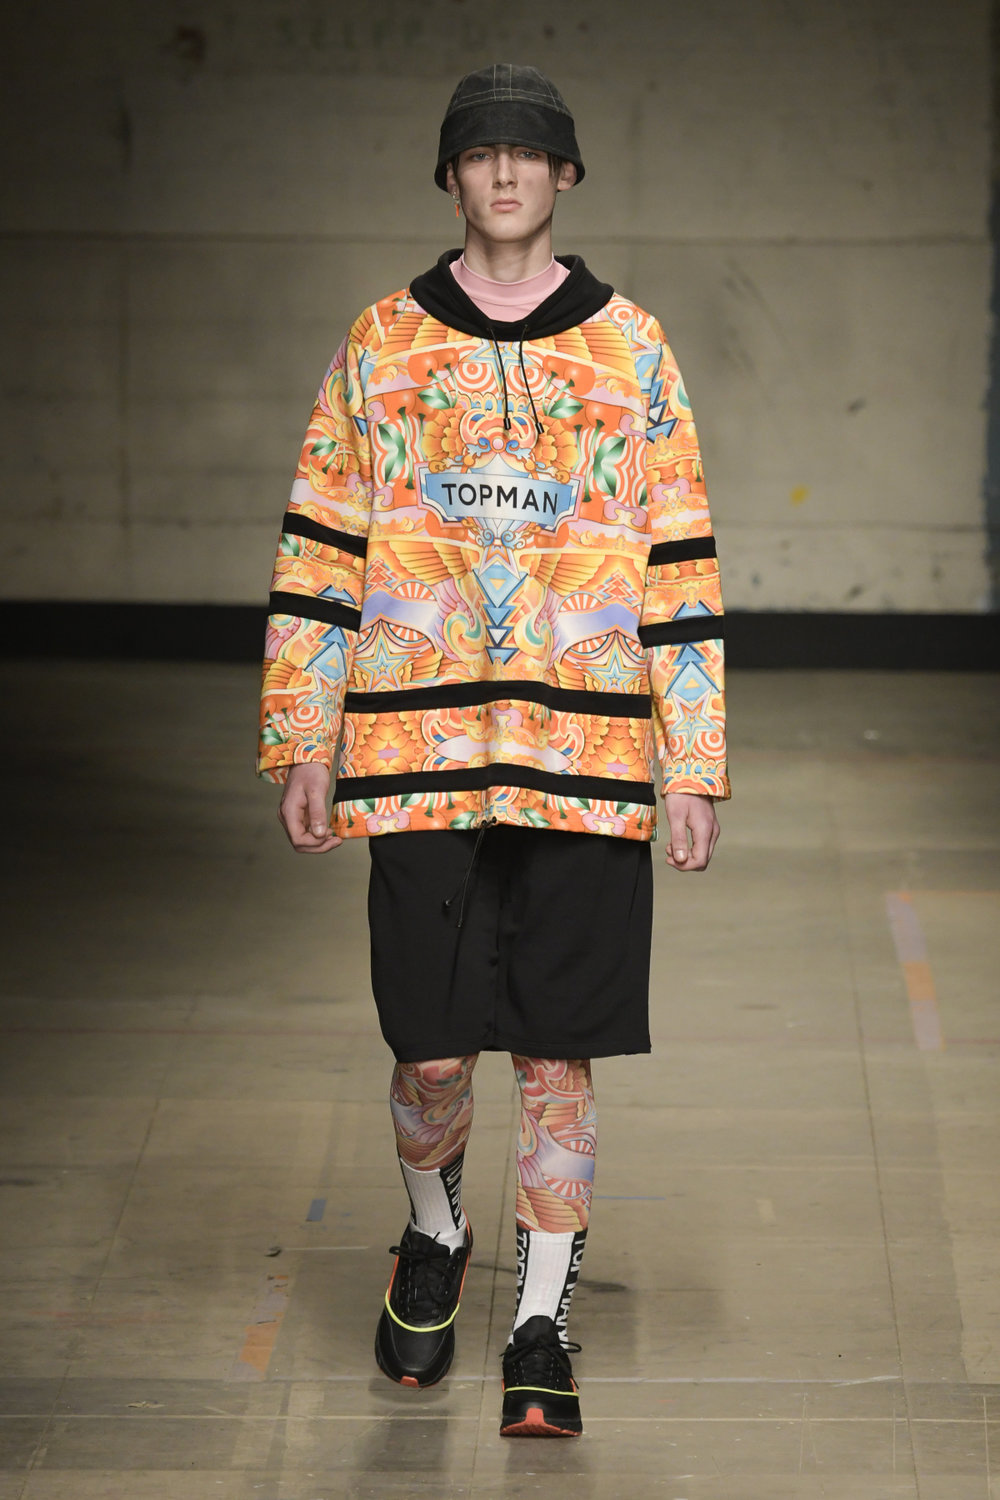 topman_design_look_28_2017_aw_mens.jpeg